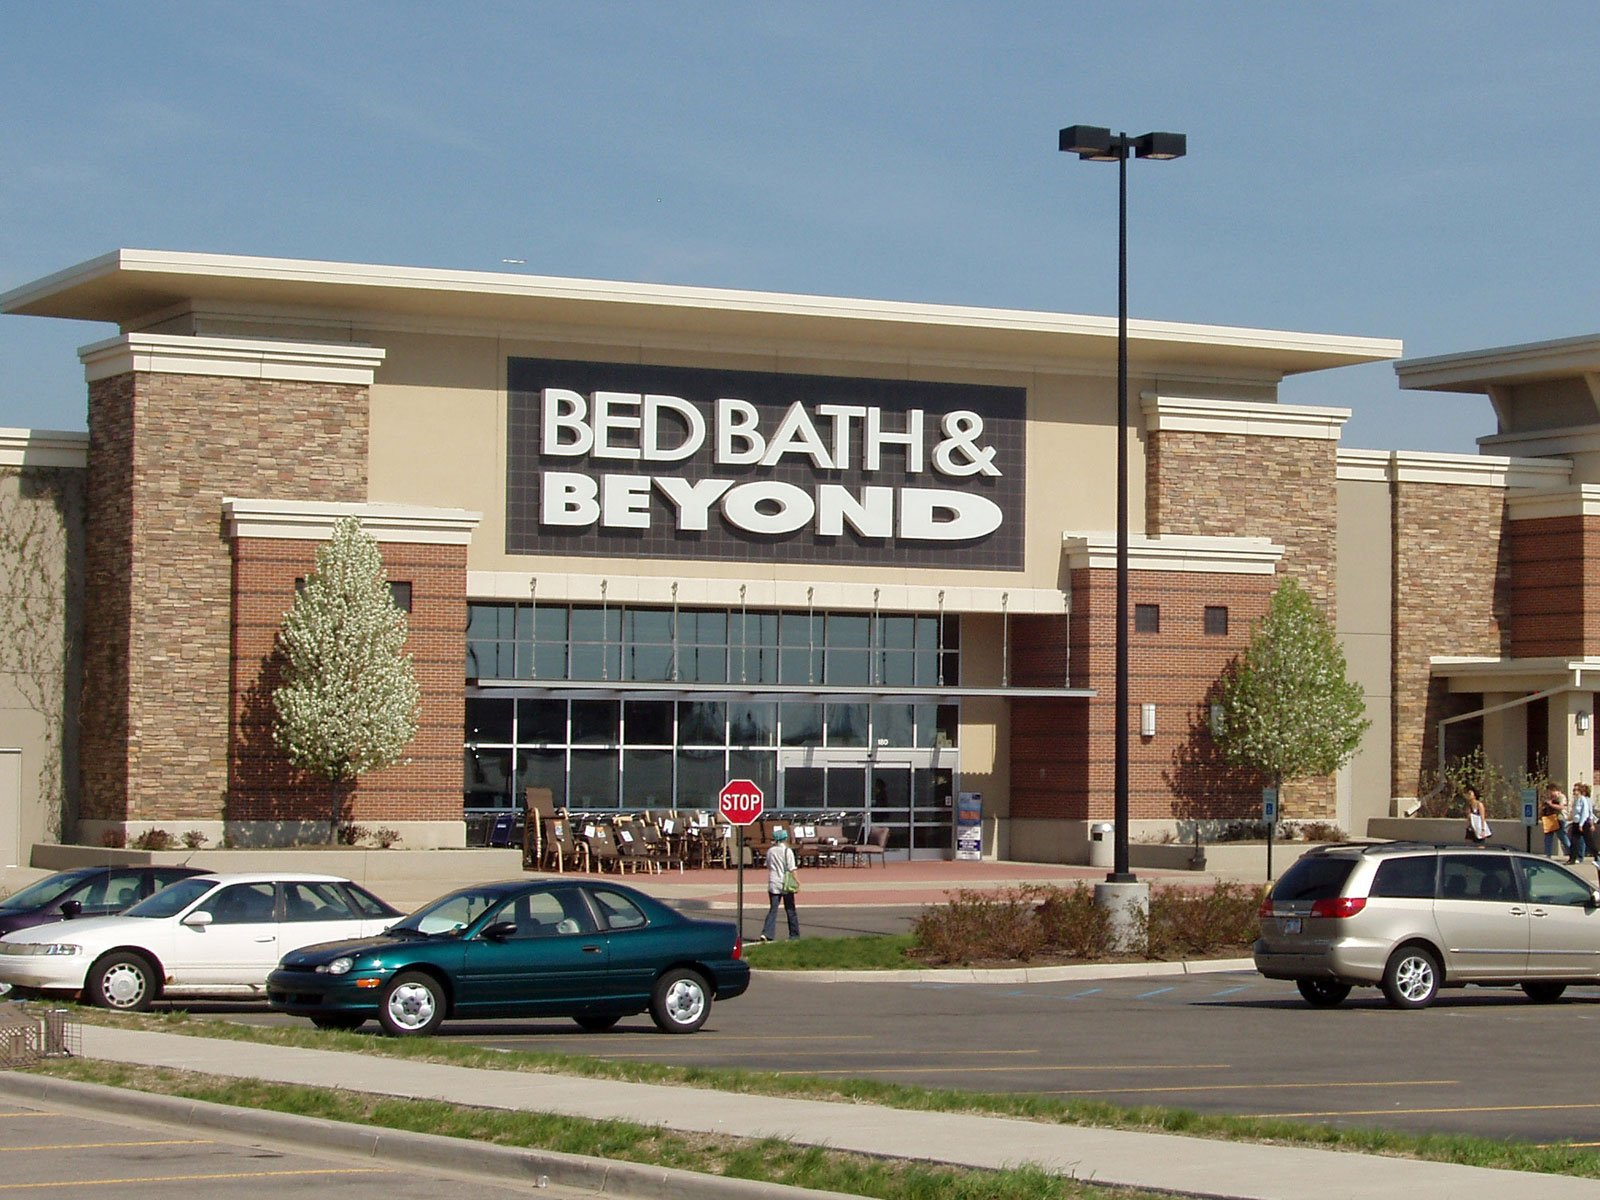 Bed bath and beyond in store discount coupons